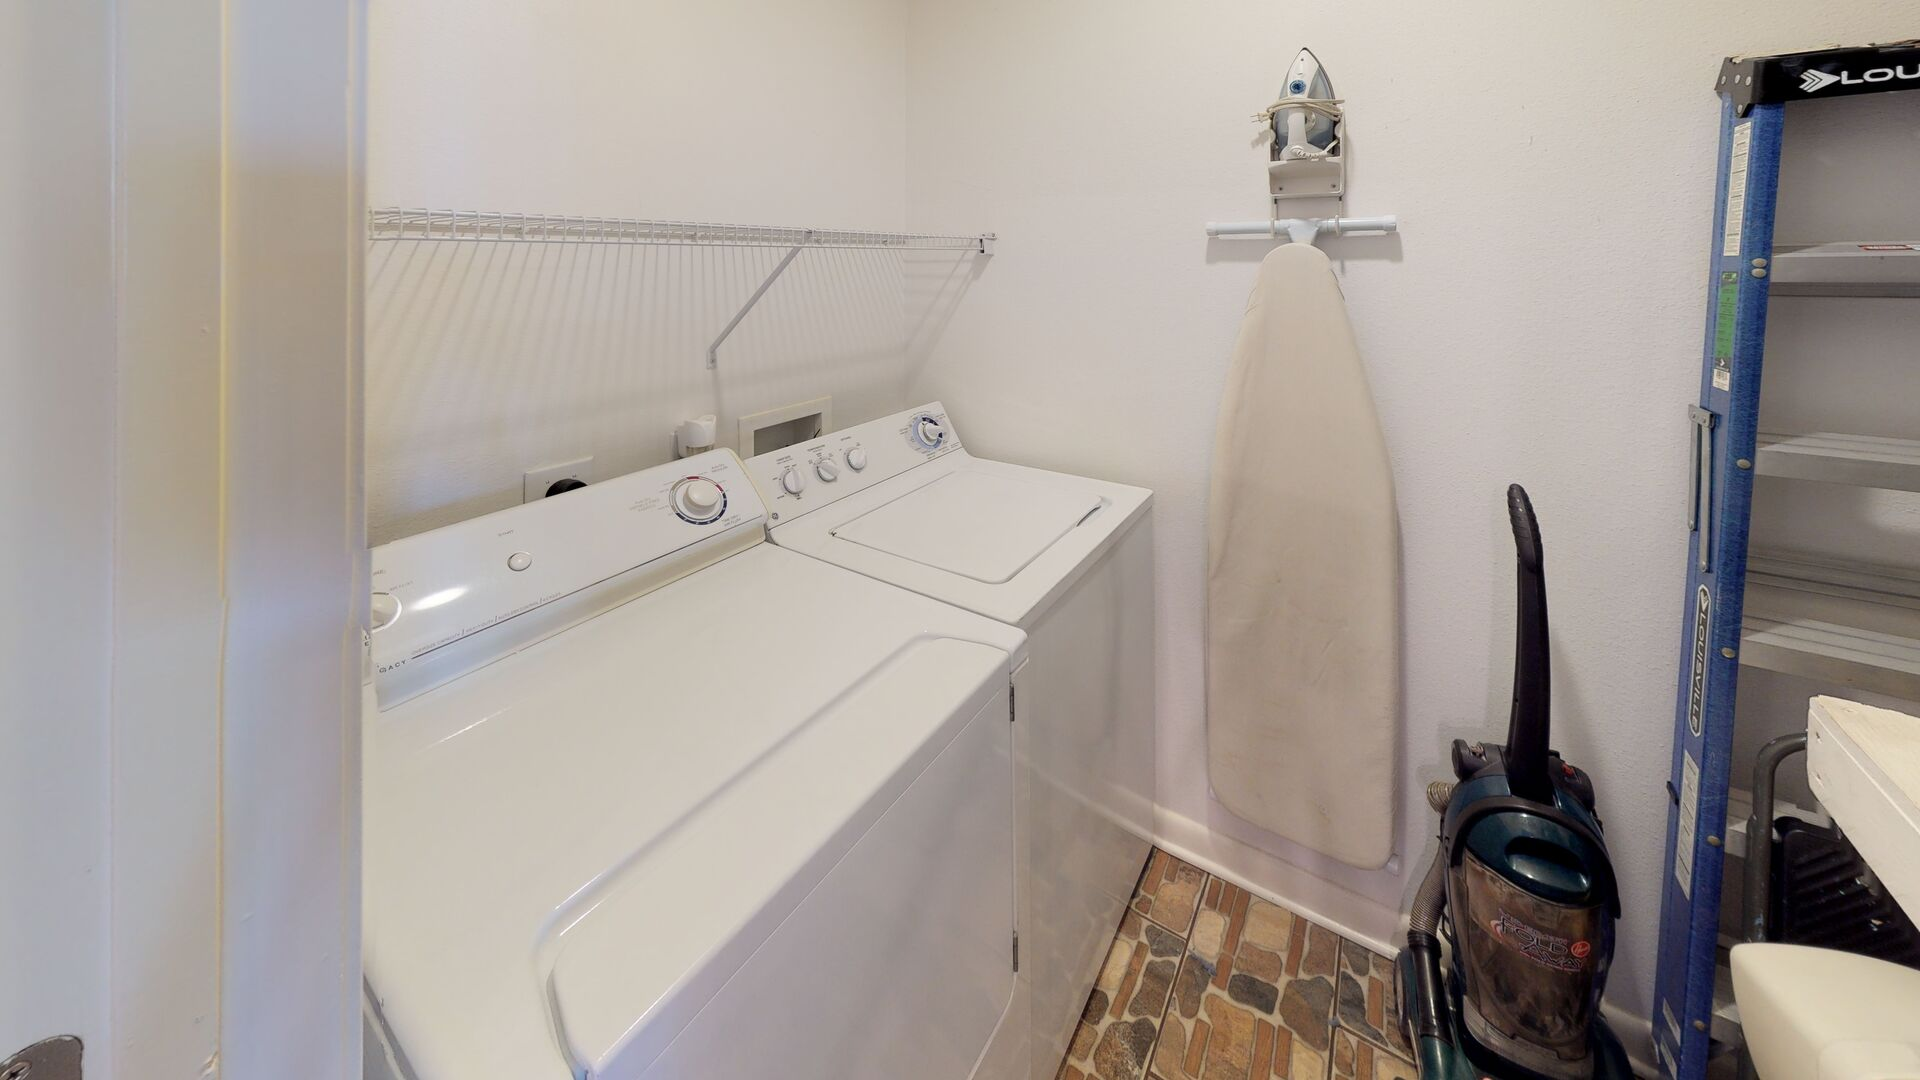 Laundry Room with Washer, Dryer, Iron, and Ironing Board.